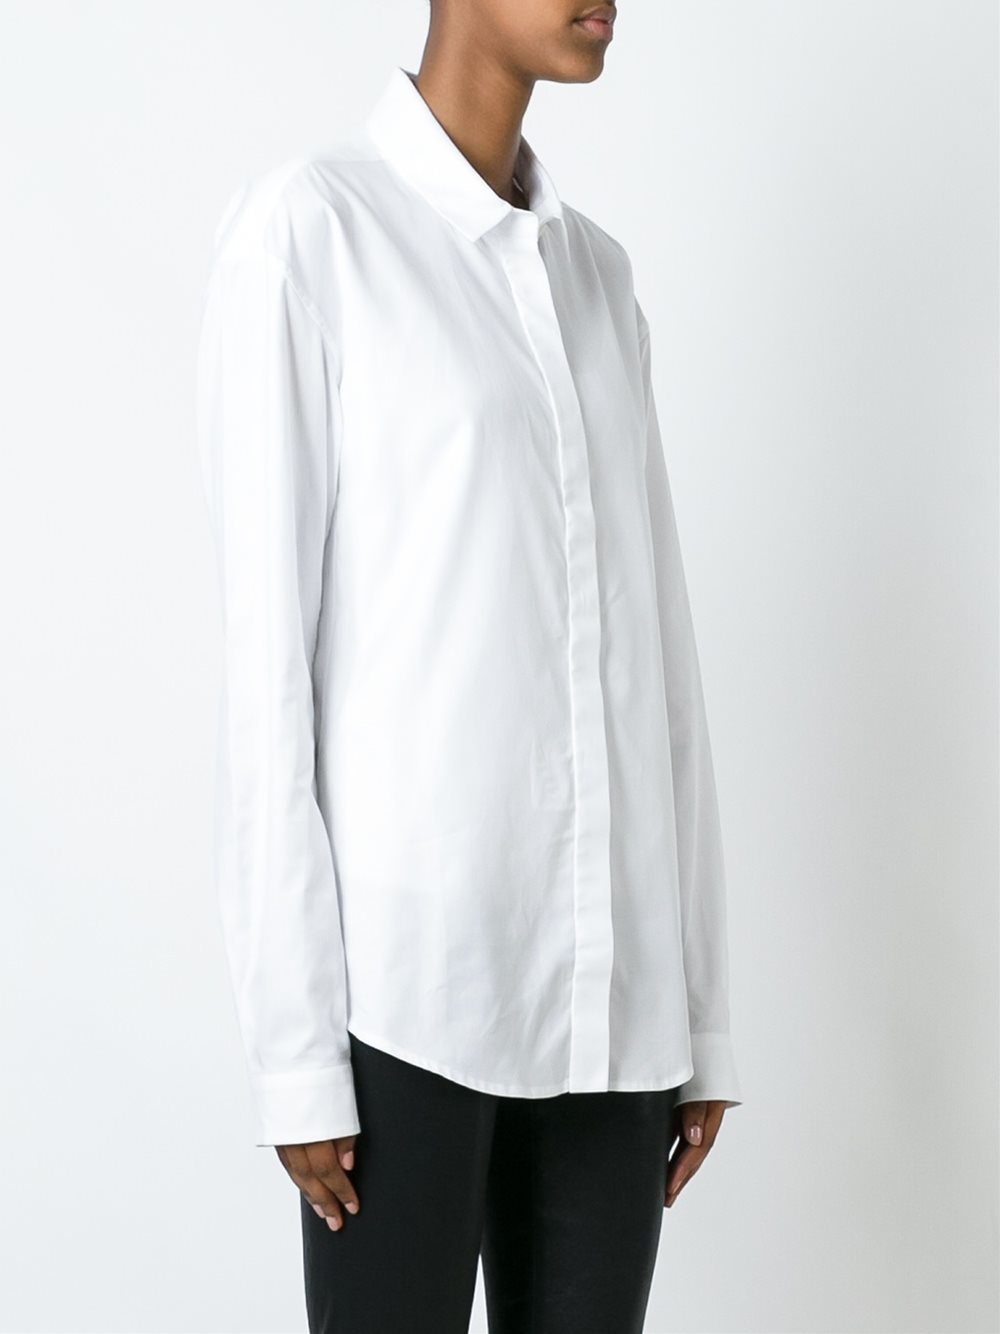 Lyst anthony vaccarello classic button down shirt in white for Preppy button down shirts